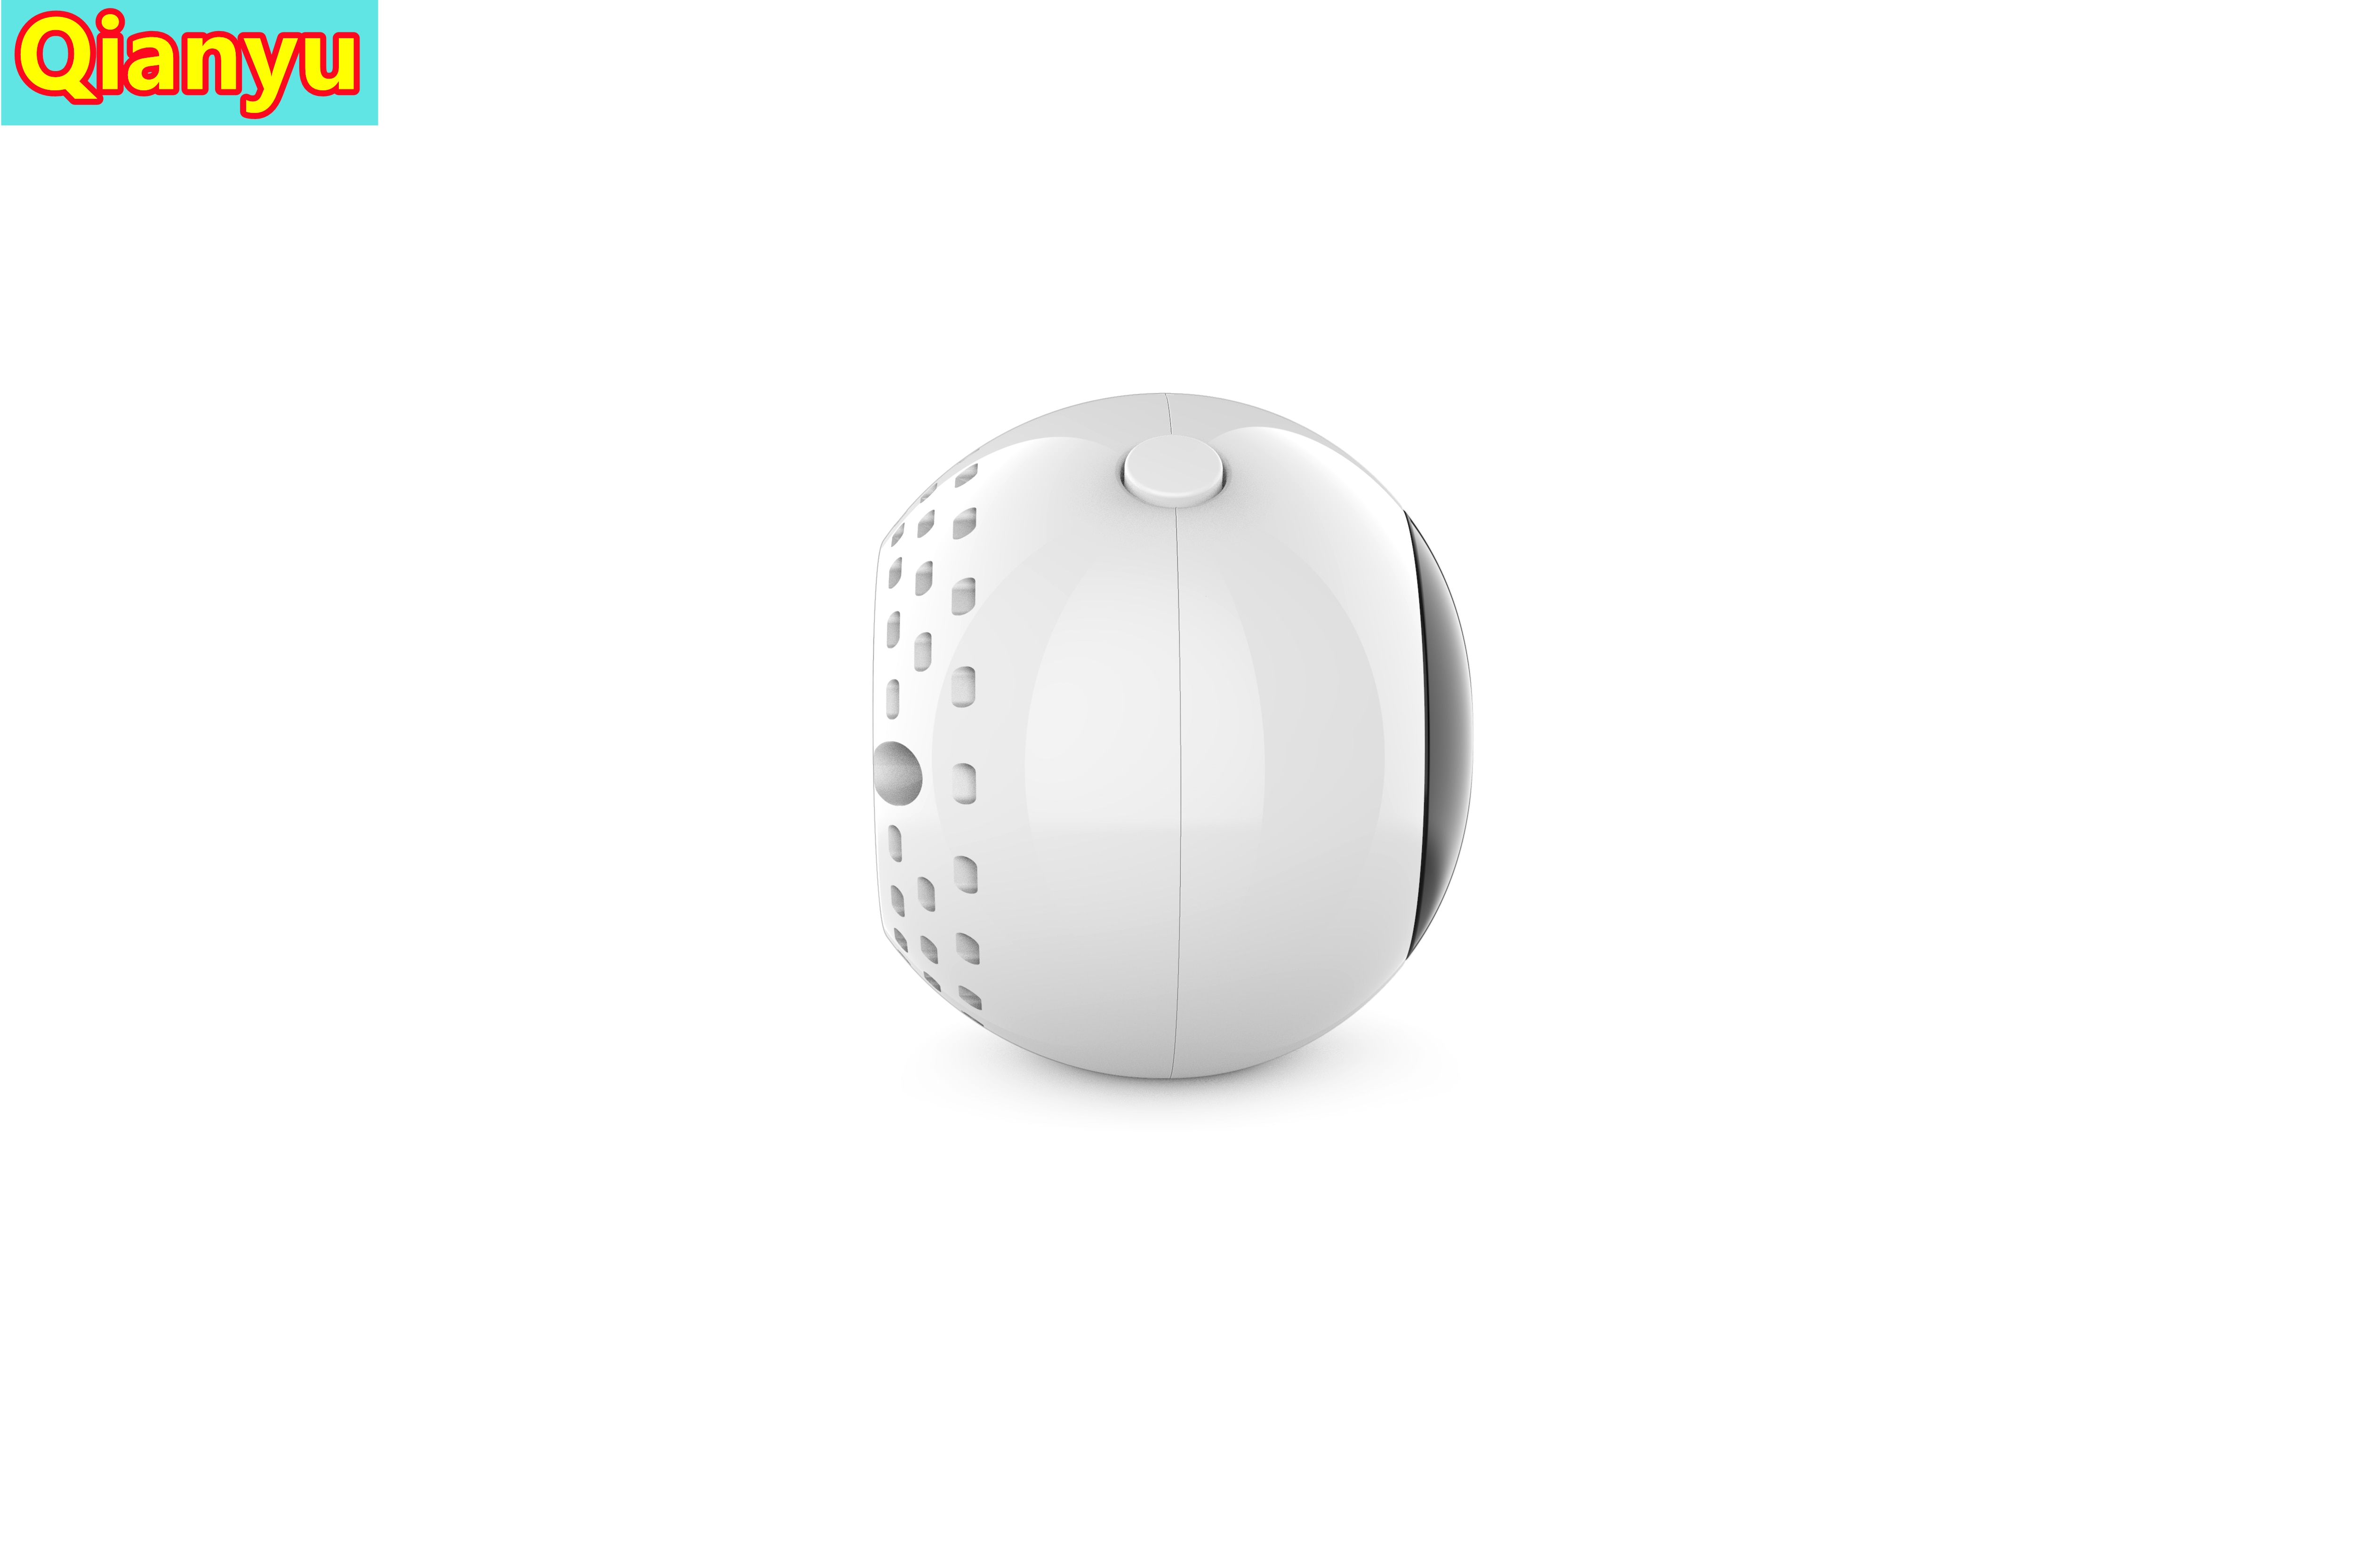 W9 camera spherical home security surveillance outdoor sports DV HD 1080P low-power camera A9 enlarge